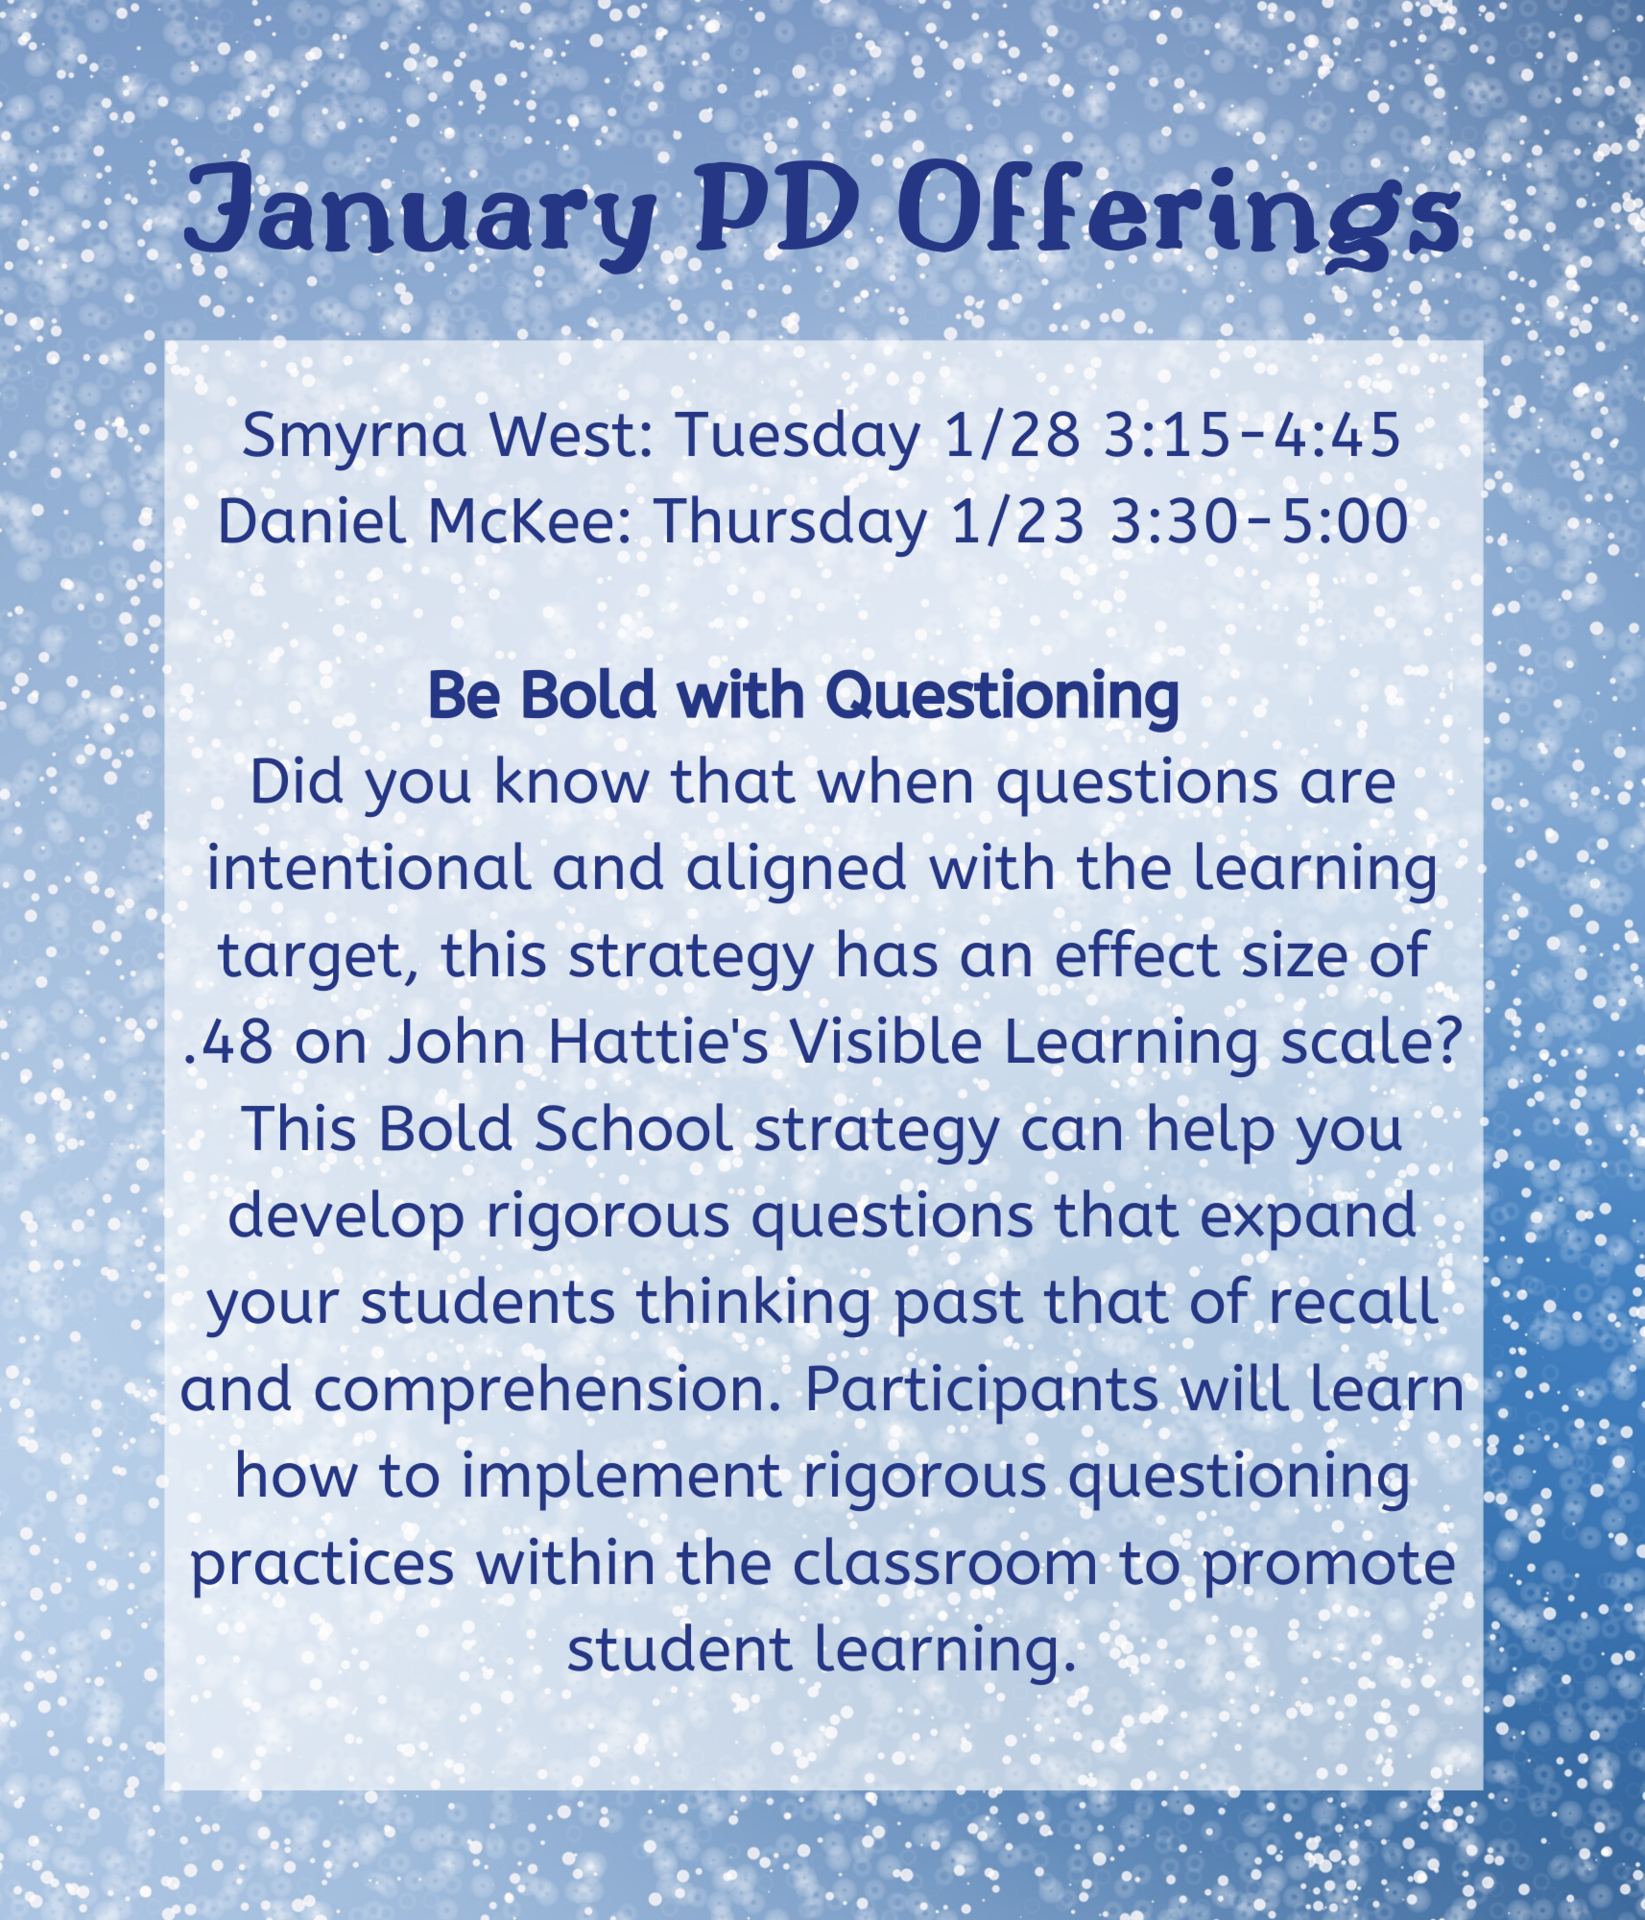 January PD Offerings